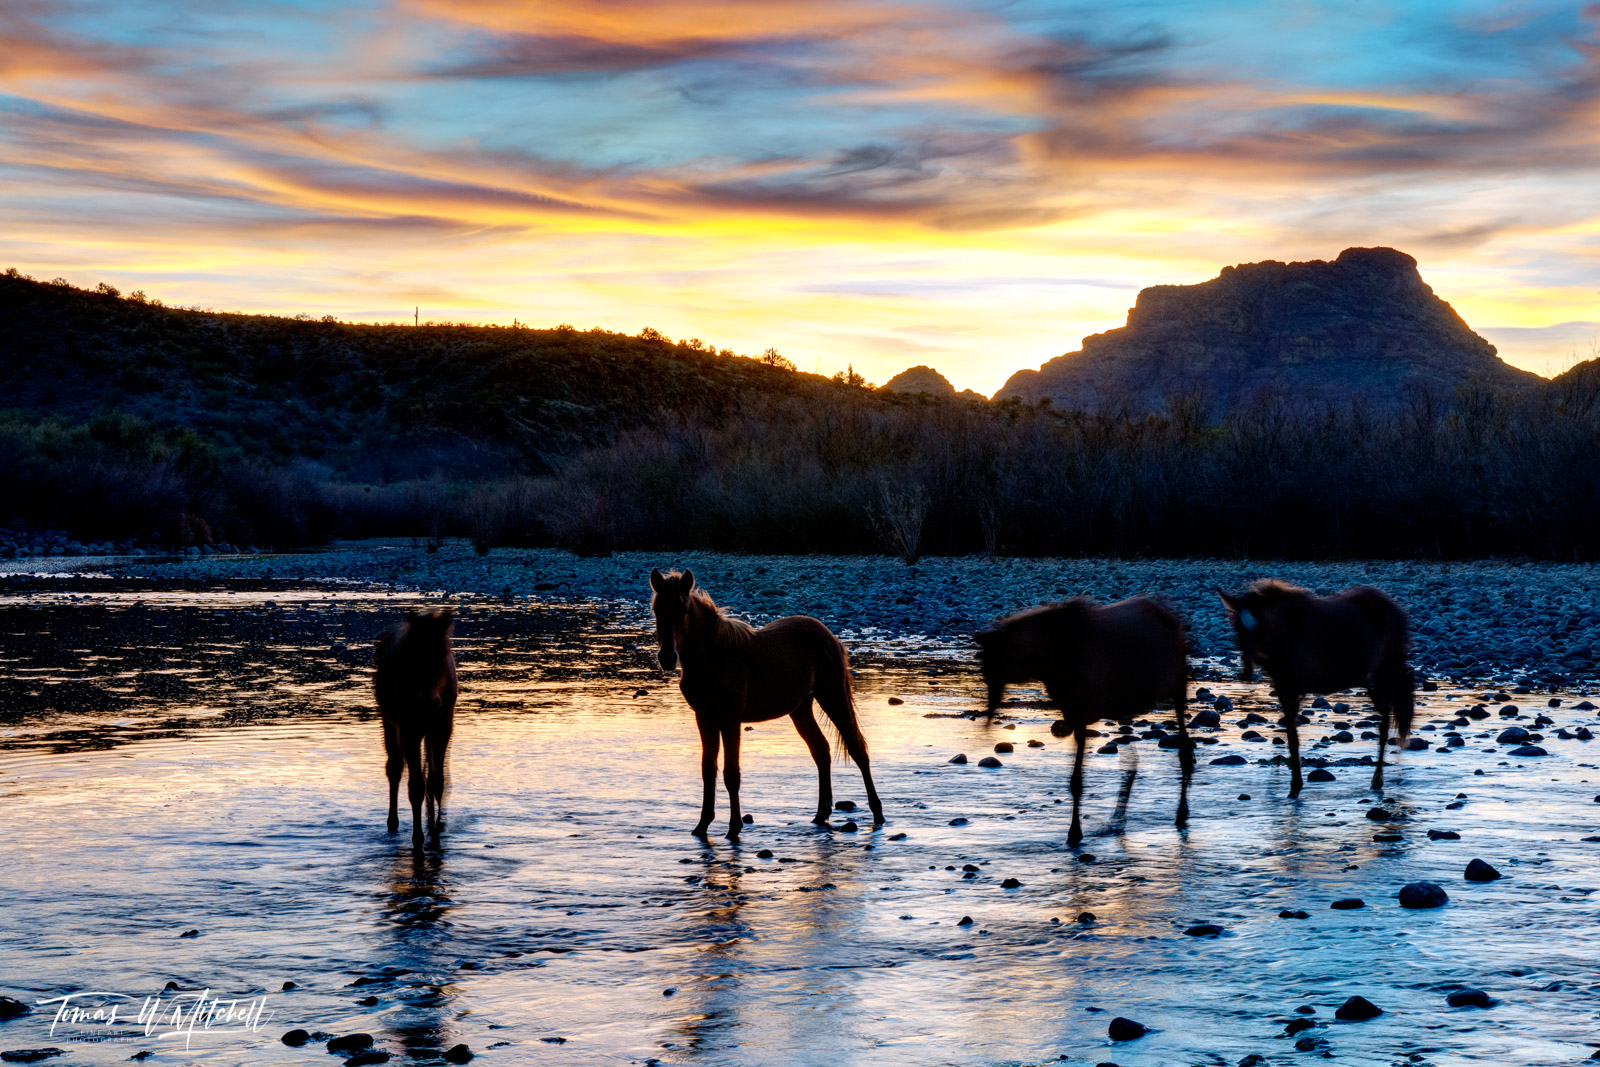 limited edition, fine art, prints, photograph, salt river, arizona, wild horses, mustangs, abstract, ghost horses of the river, sunset, twilight, photo